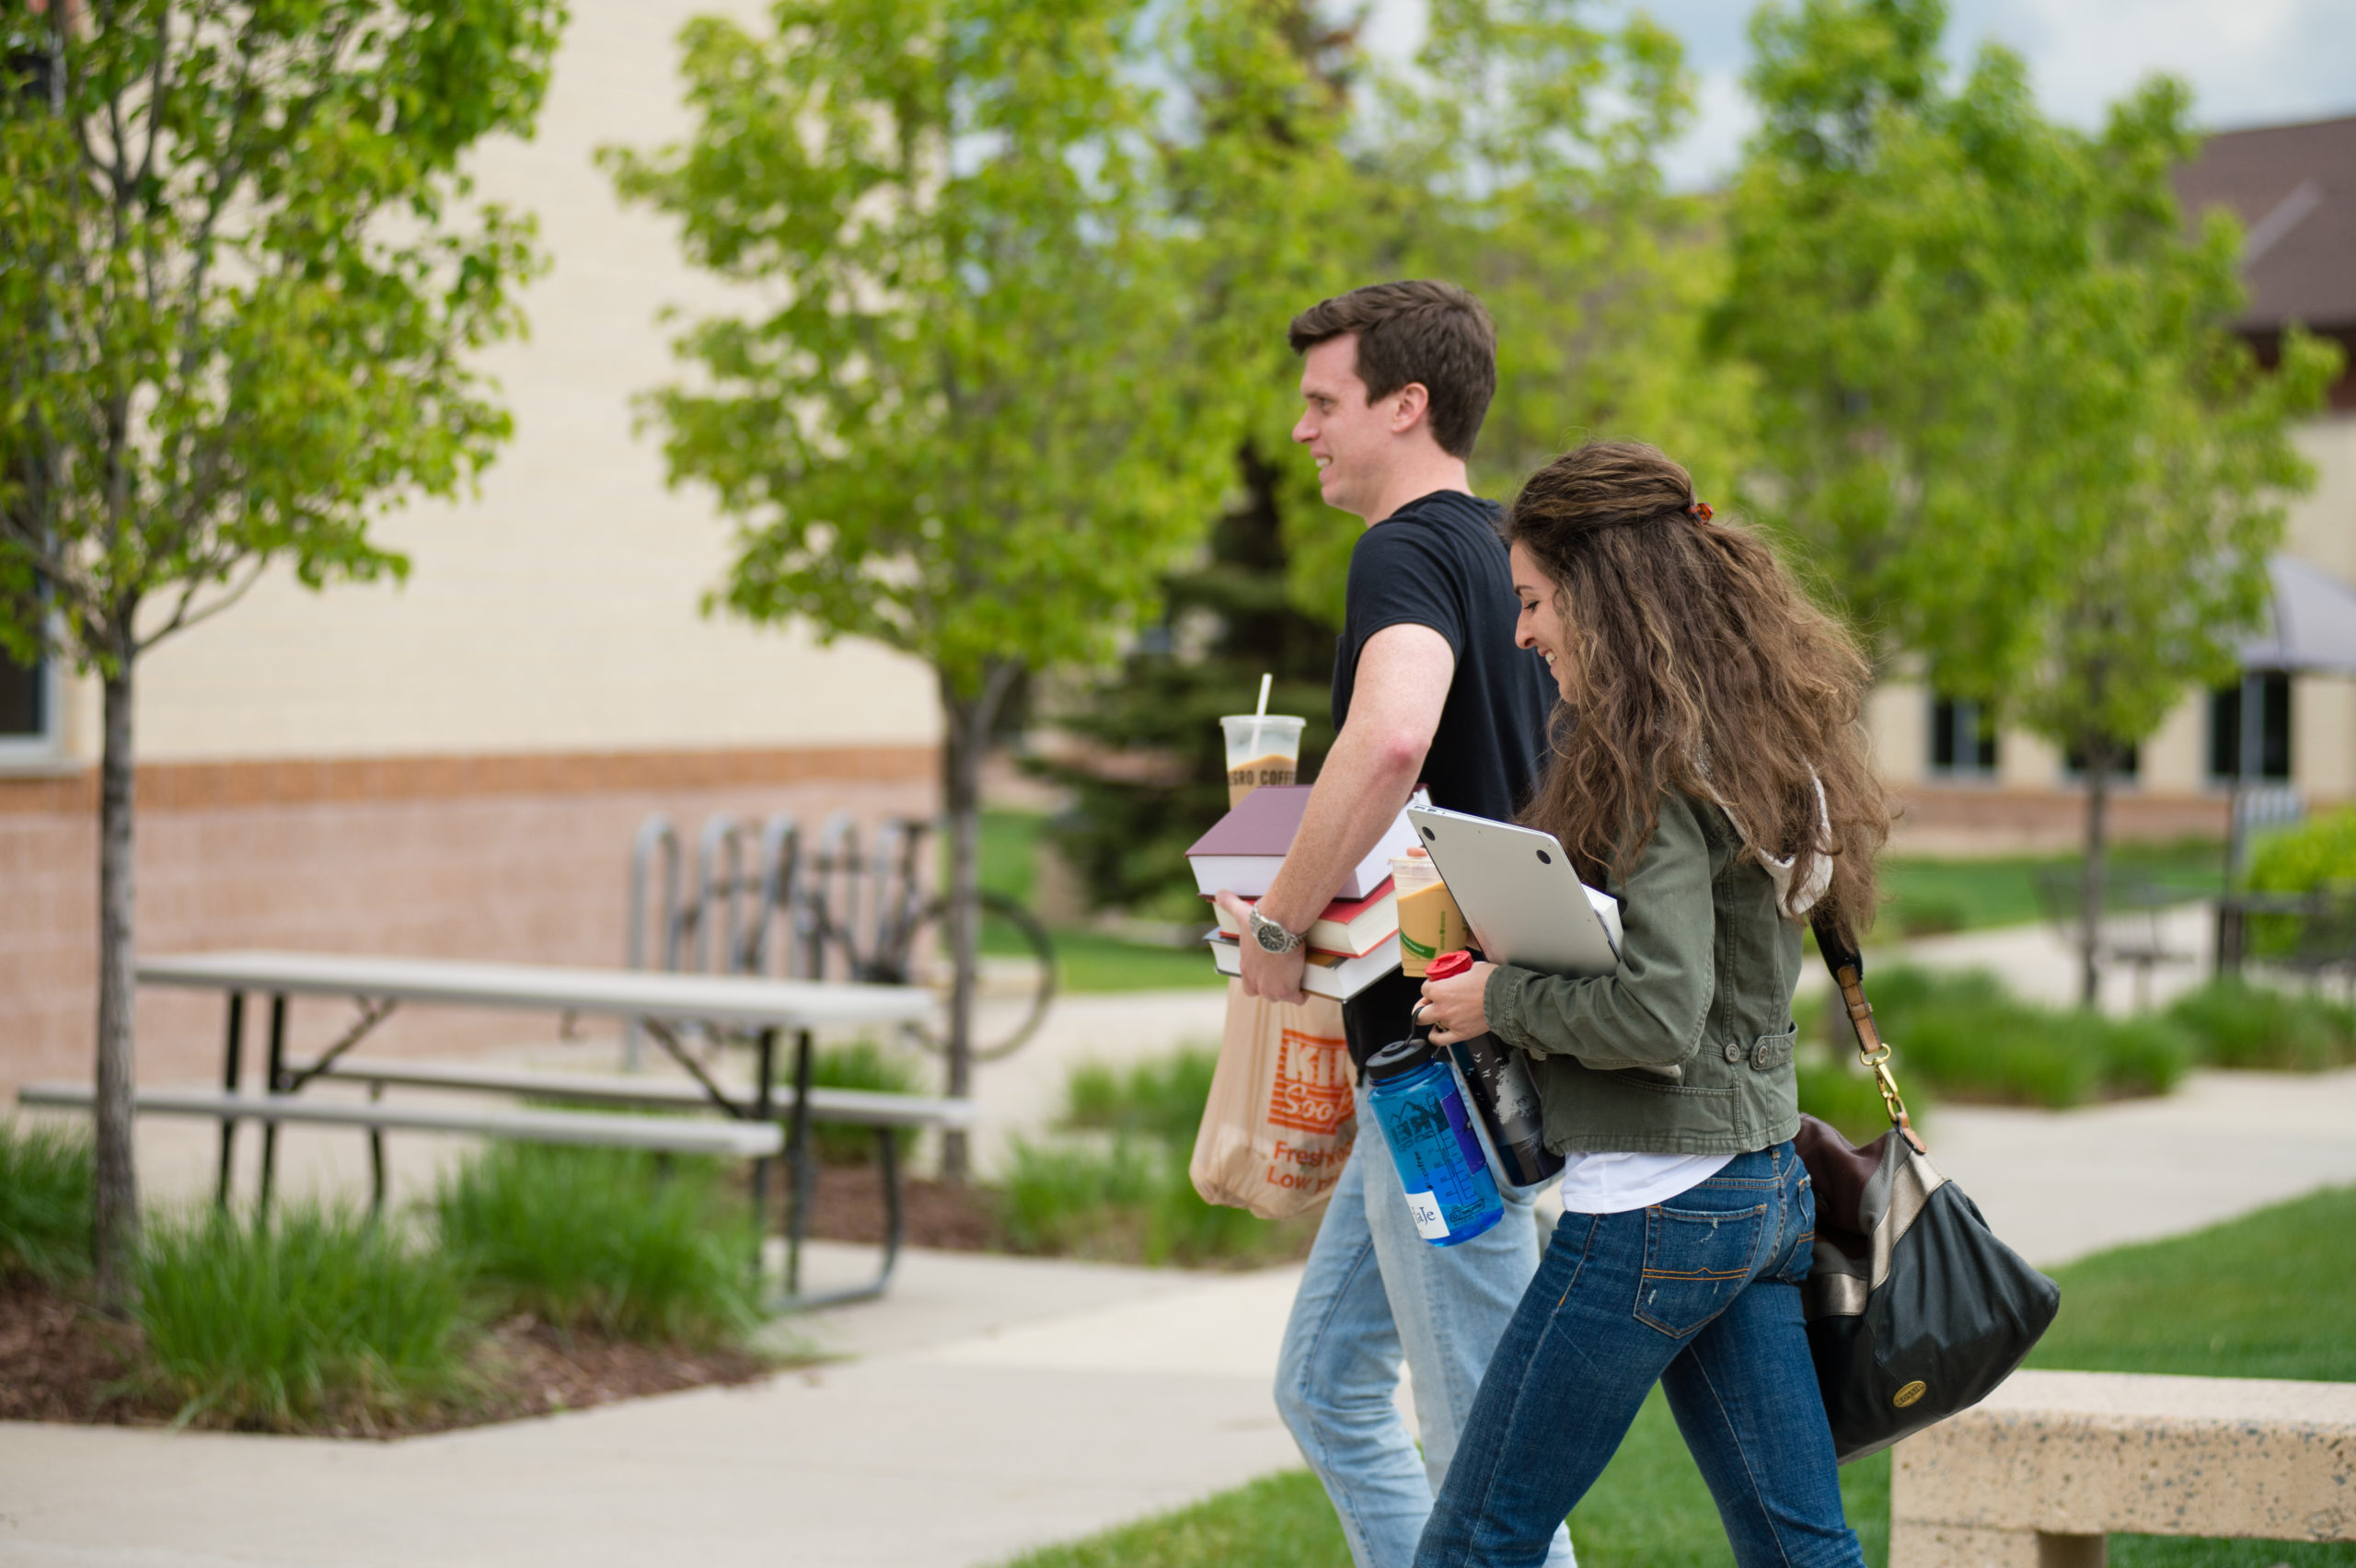 man and woman walking and talking on campus